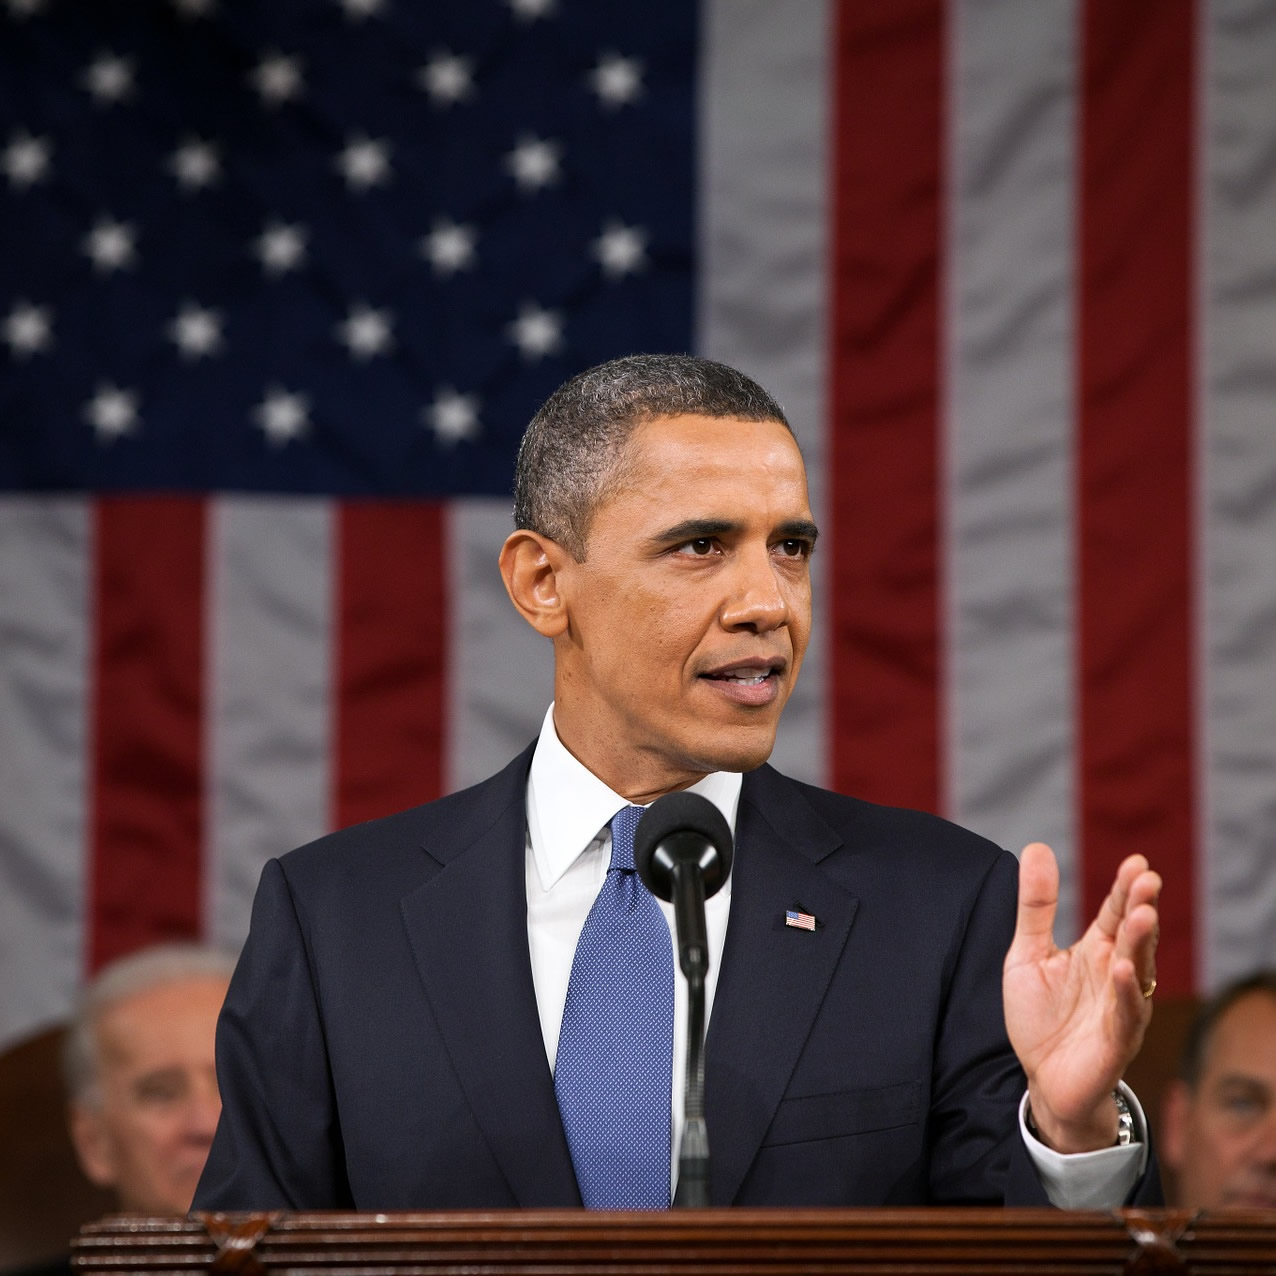 Obama to Bar Wage-Disclosure Retaliation, Direct DOL to Collect Contractor Pay Data